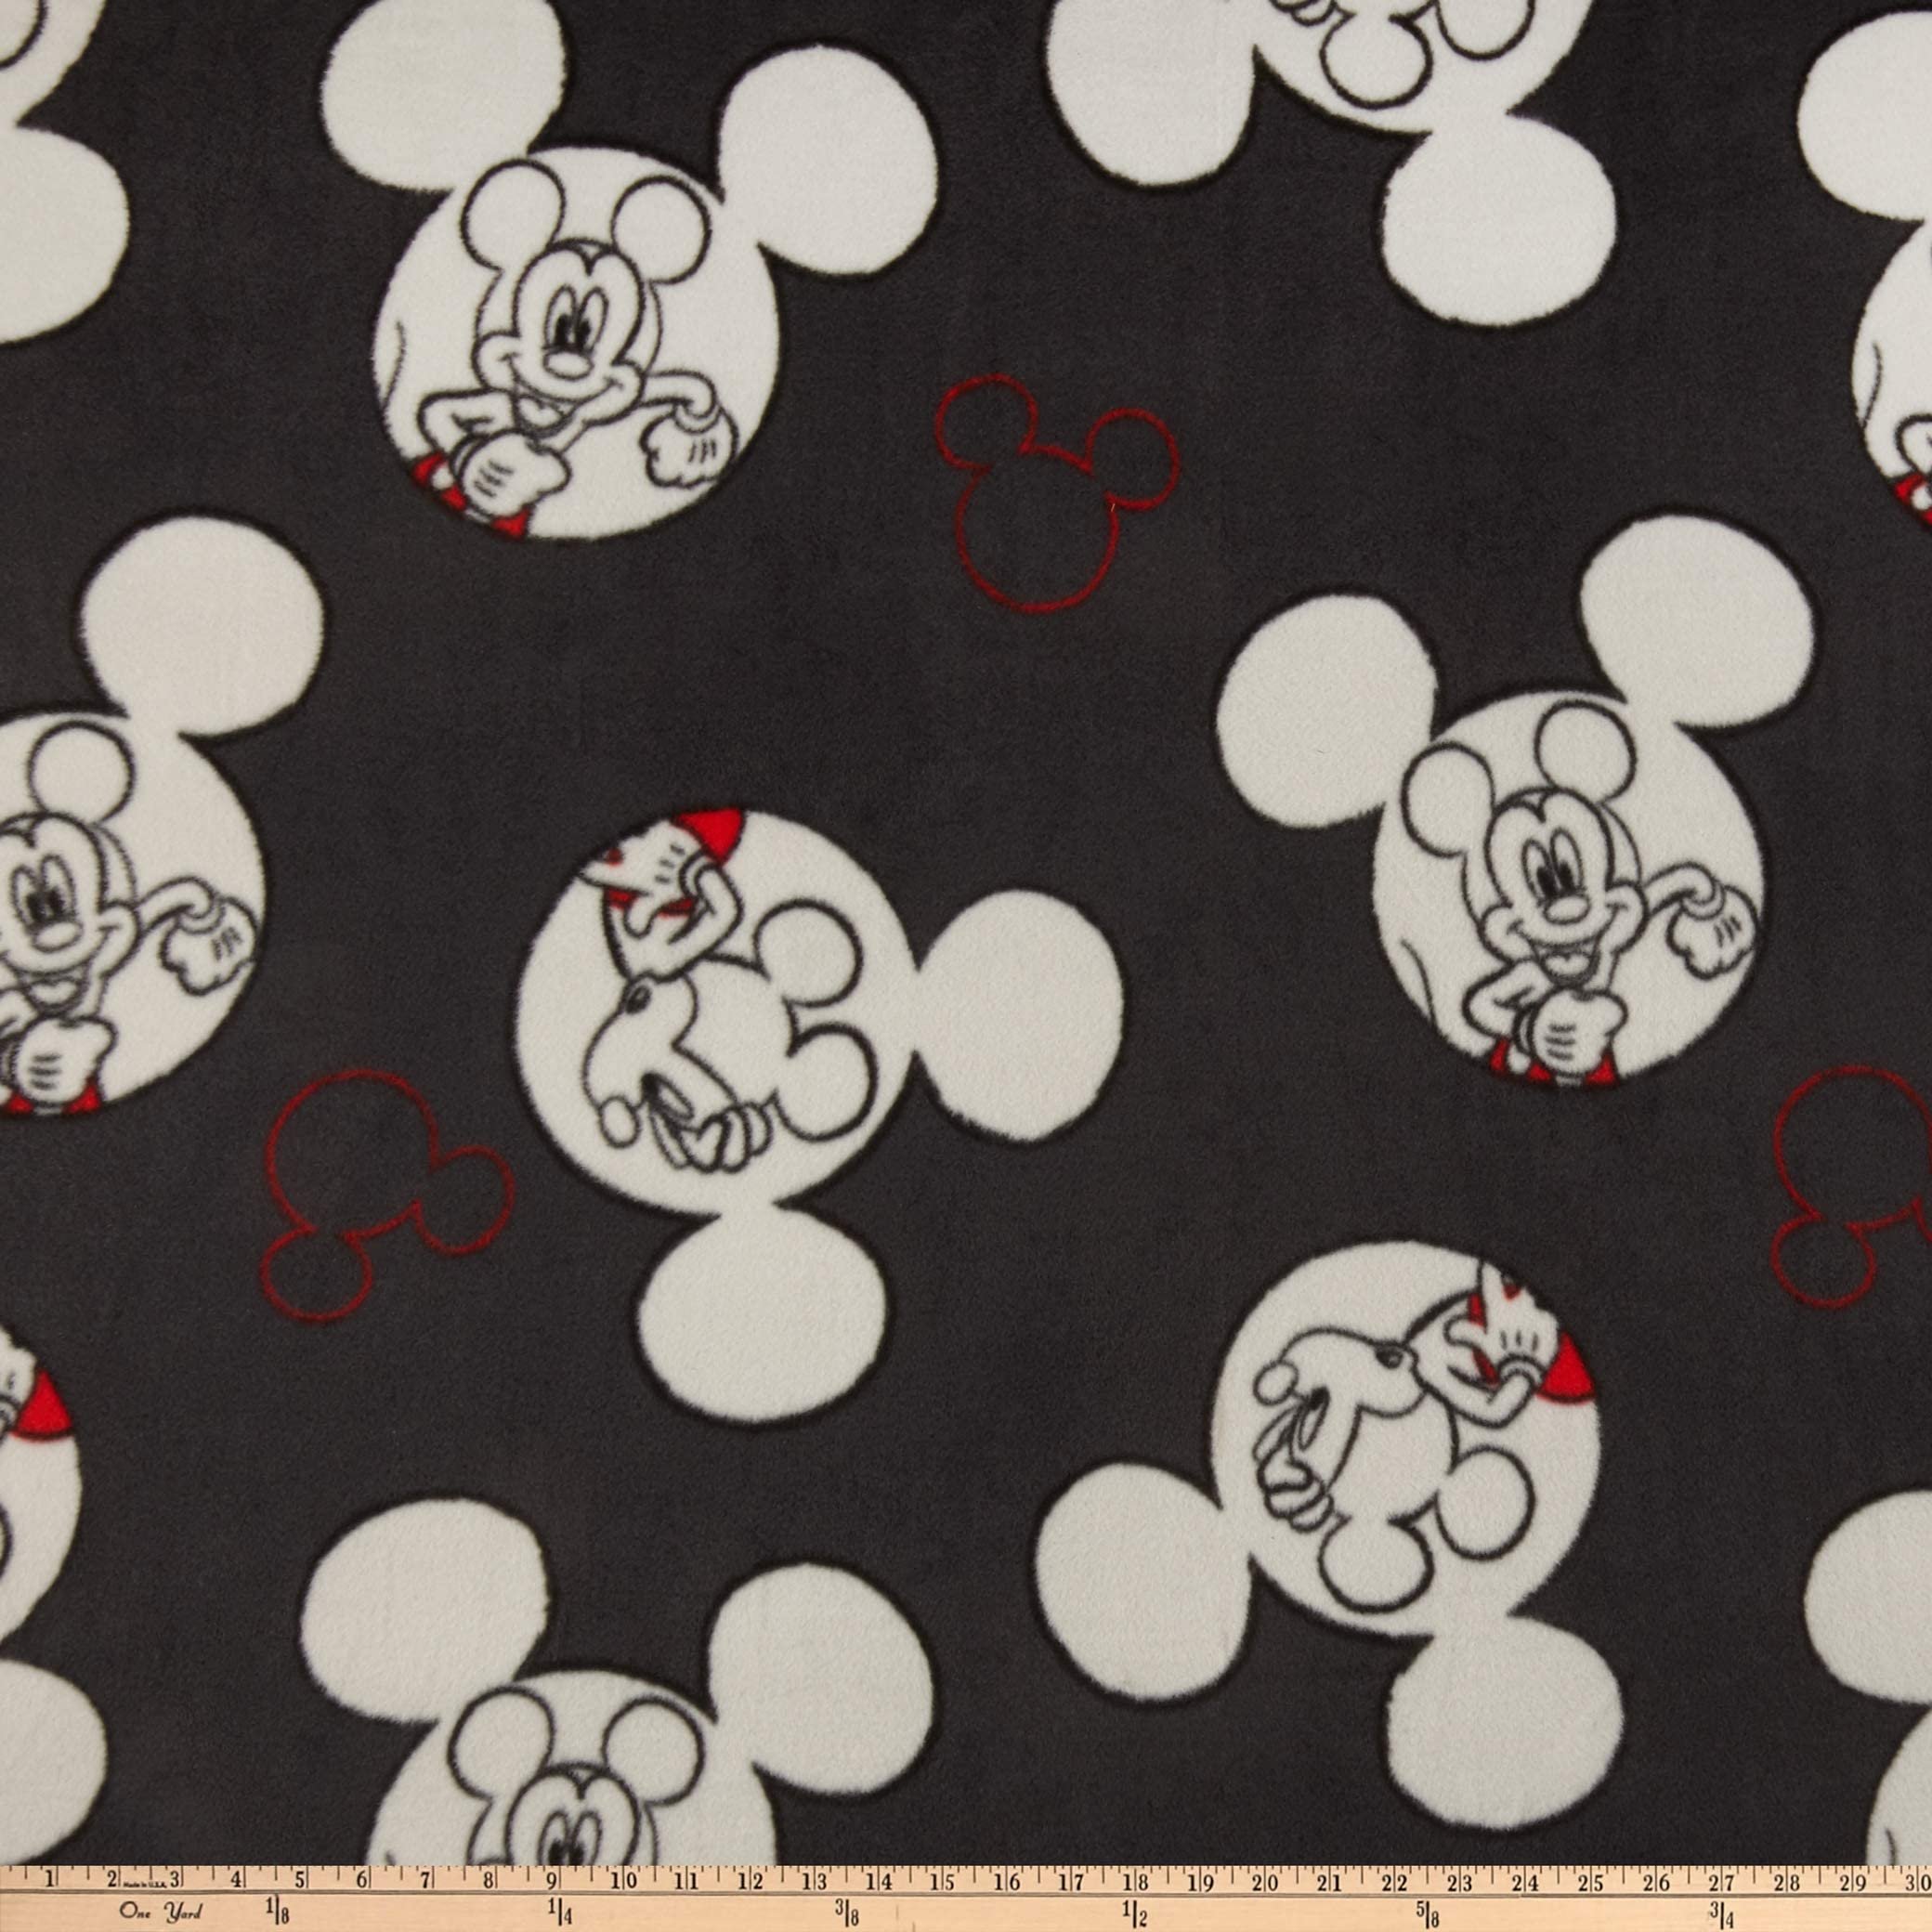 Lovely Mickey Fabric Wide 125cm Cartoon Donald Duck Cotton Fabric Stretch Twill Cotton Fabric DIY Sewing Children Clothing Pants